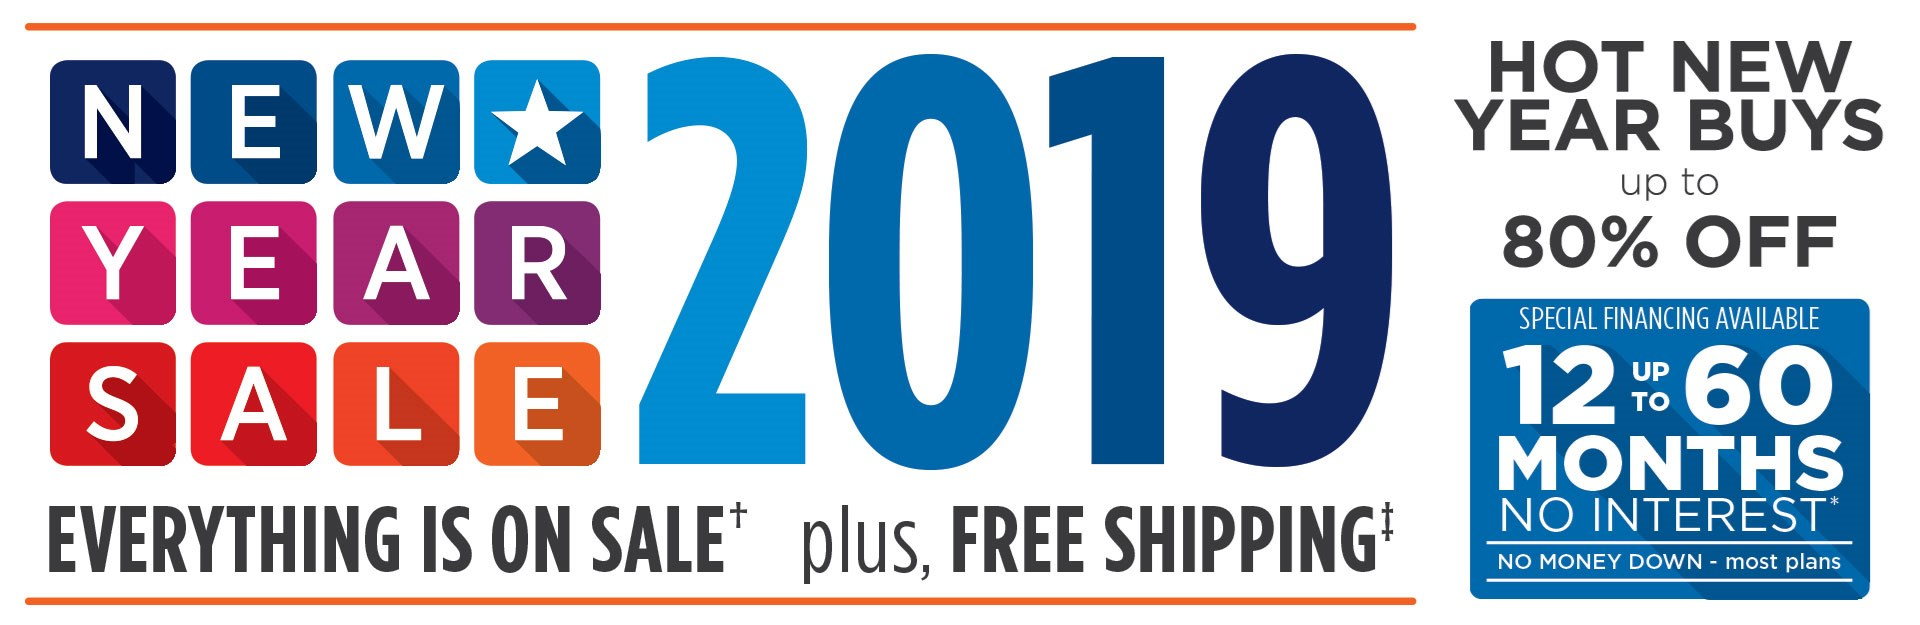 new-year-sale-2019